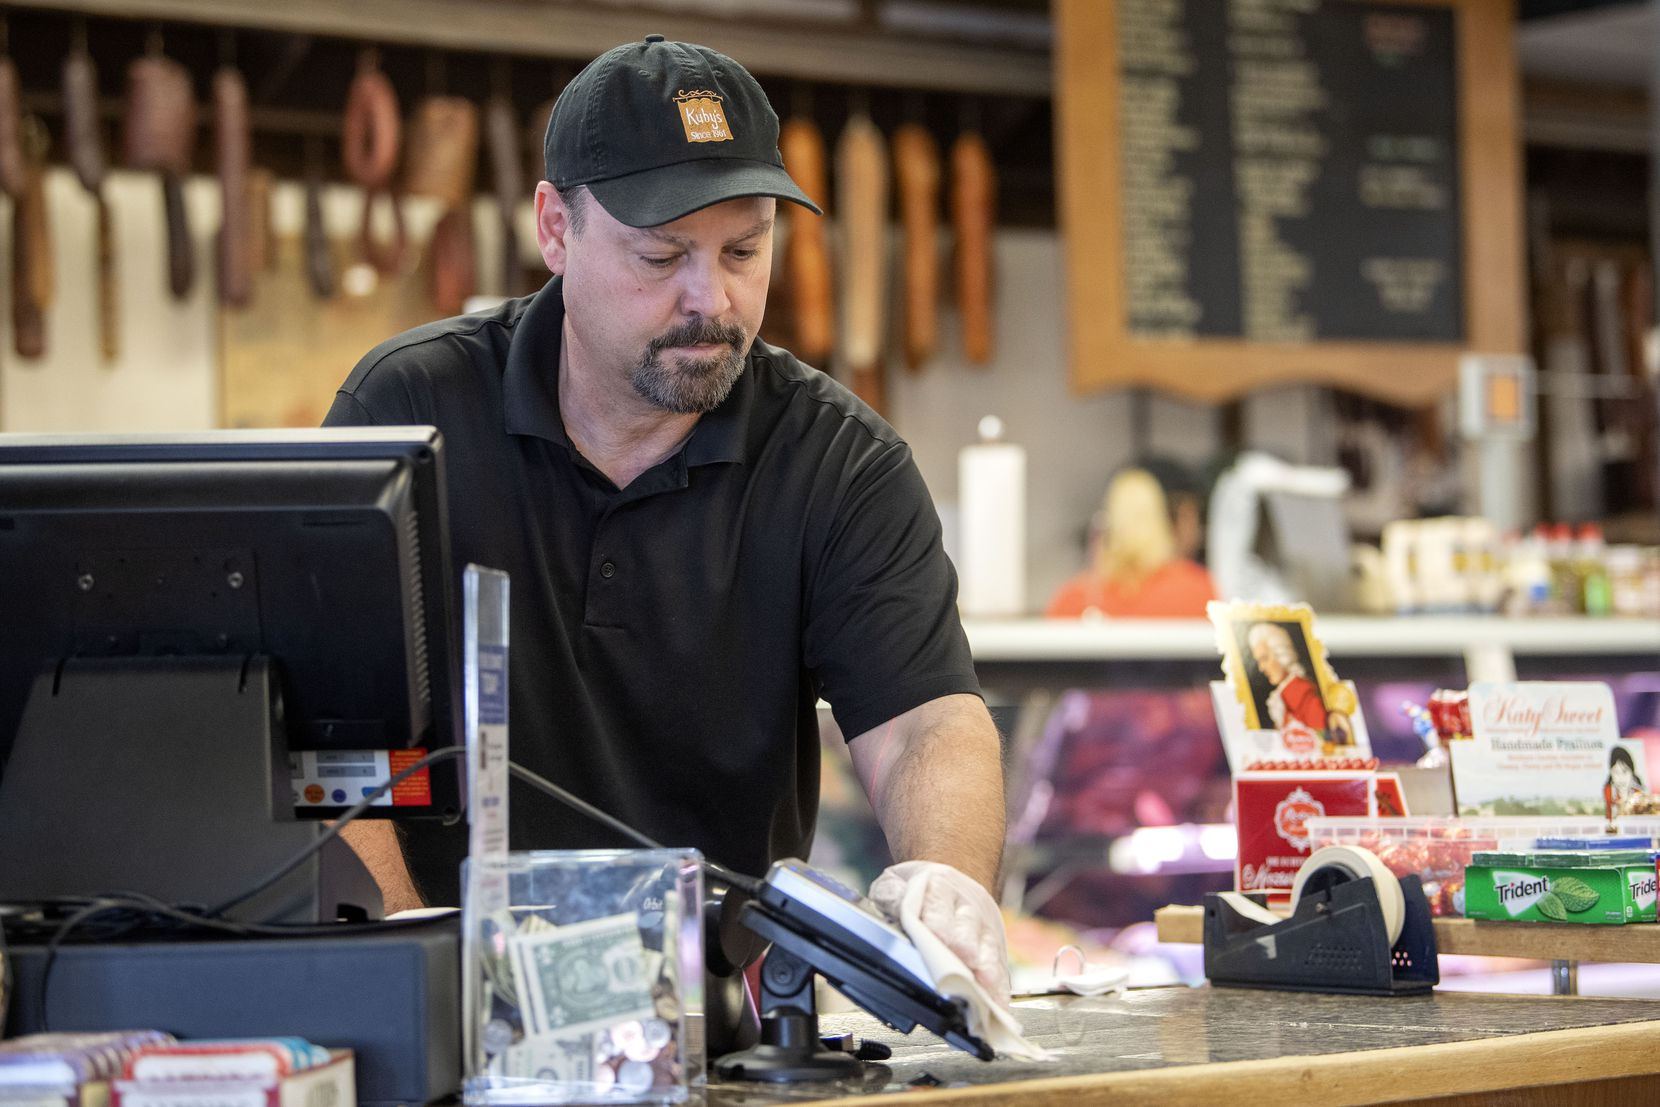 Karl Kuby Jr., owner of Kuby's Sausage House and European Market, sanitizes the credit card machine on Tuesday, March 24, 2020 in Dallas.